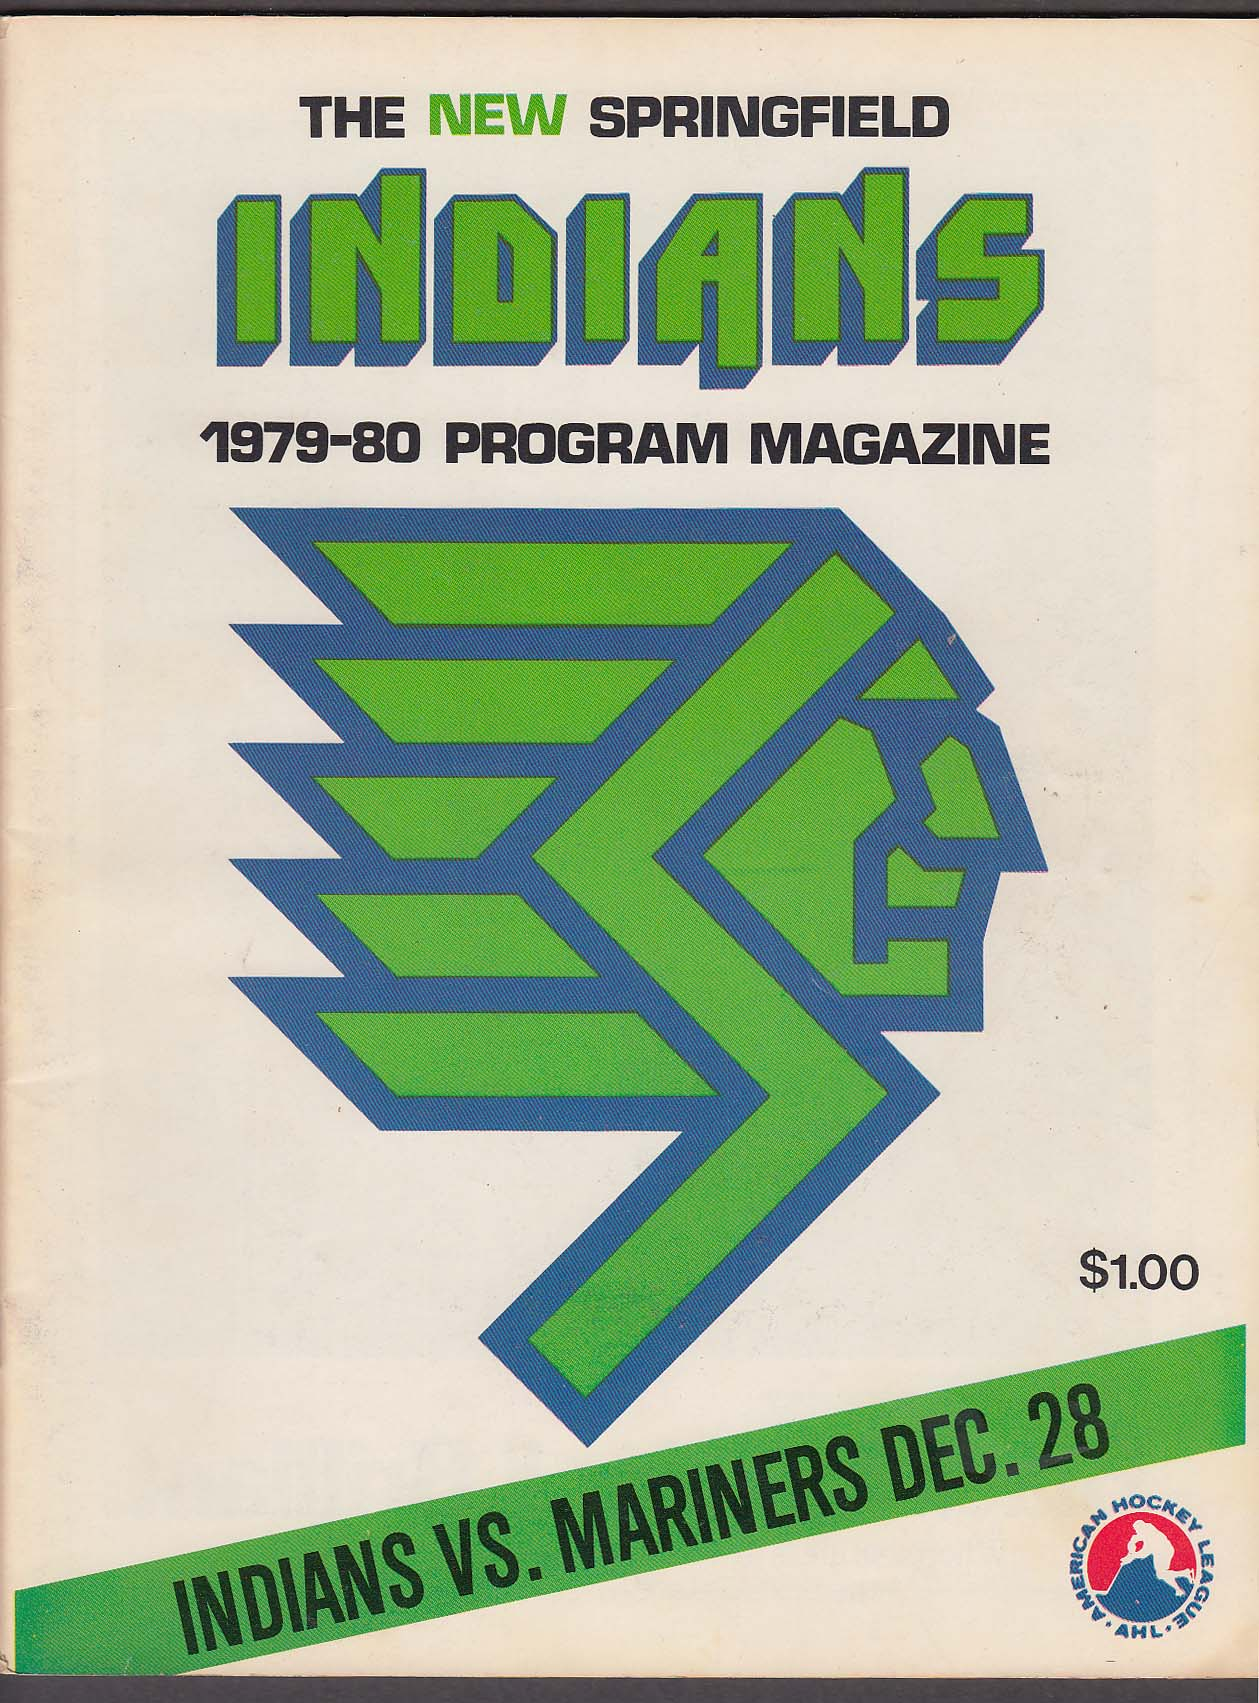 New Springfield Indians vs Mariners 12/28 1979 program unscored